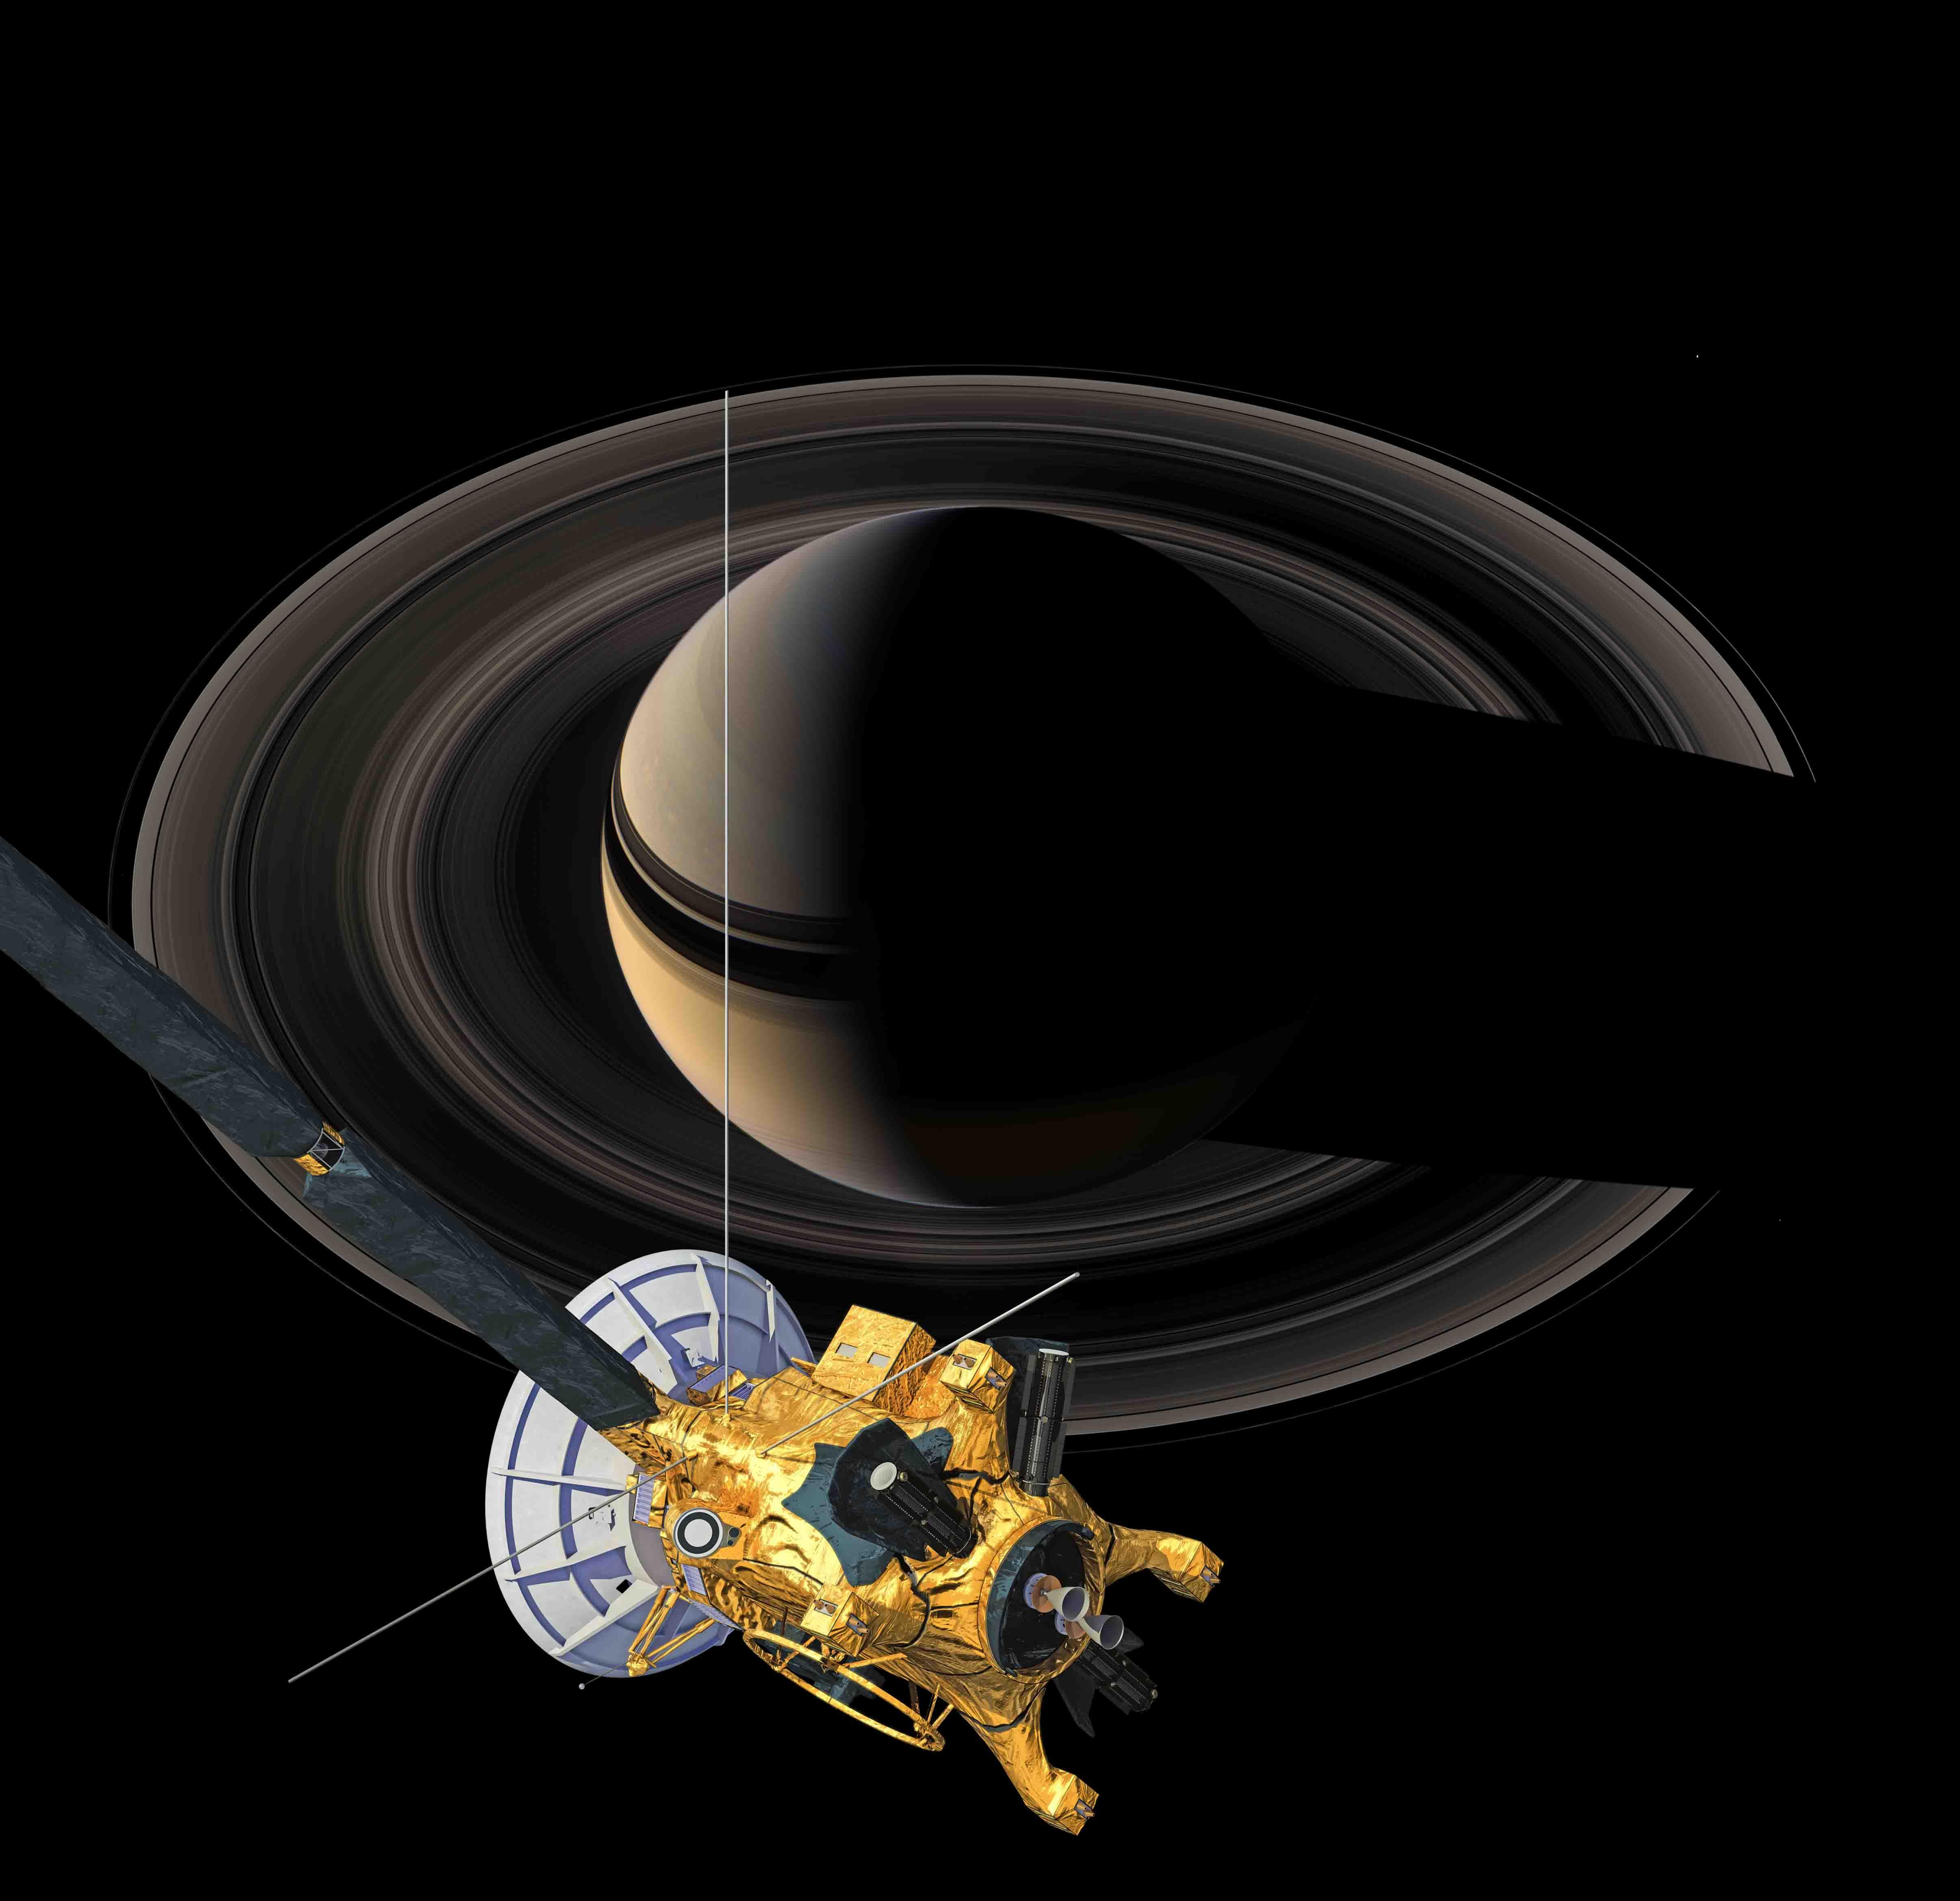 cassini spacecraft pictures of saturn - HD 4824×4680